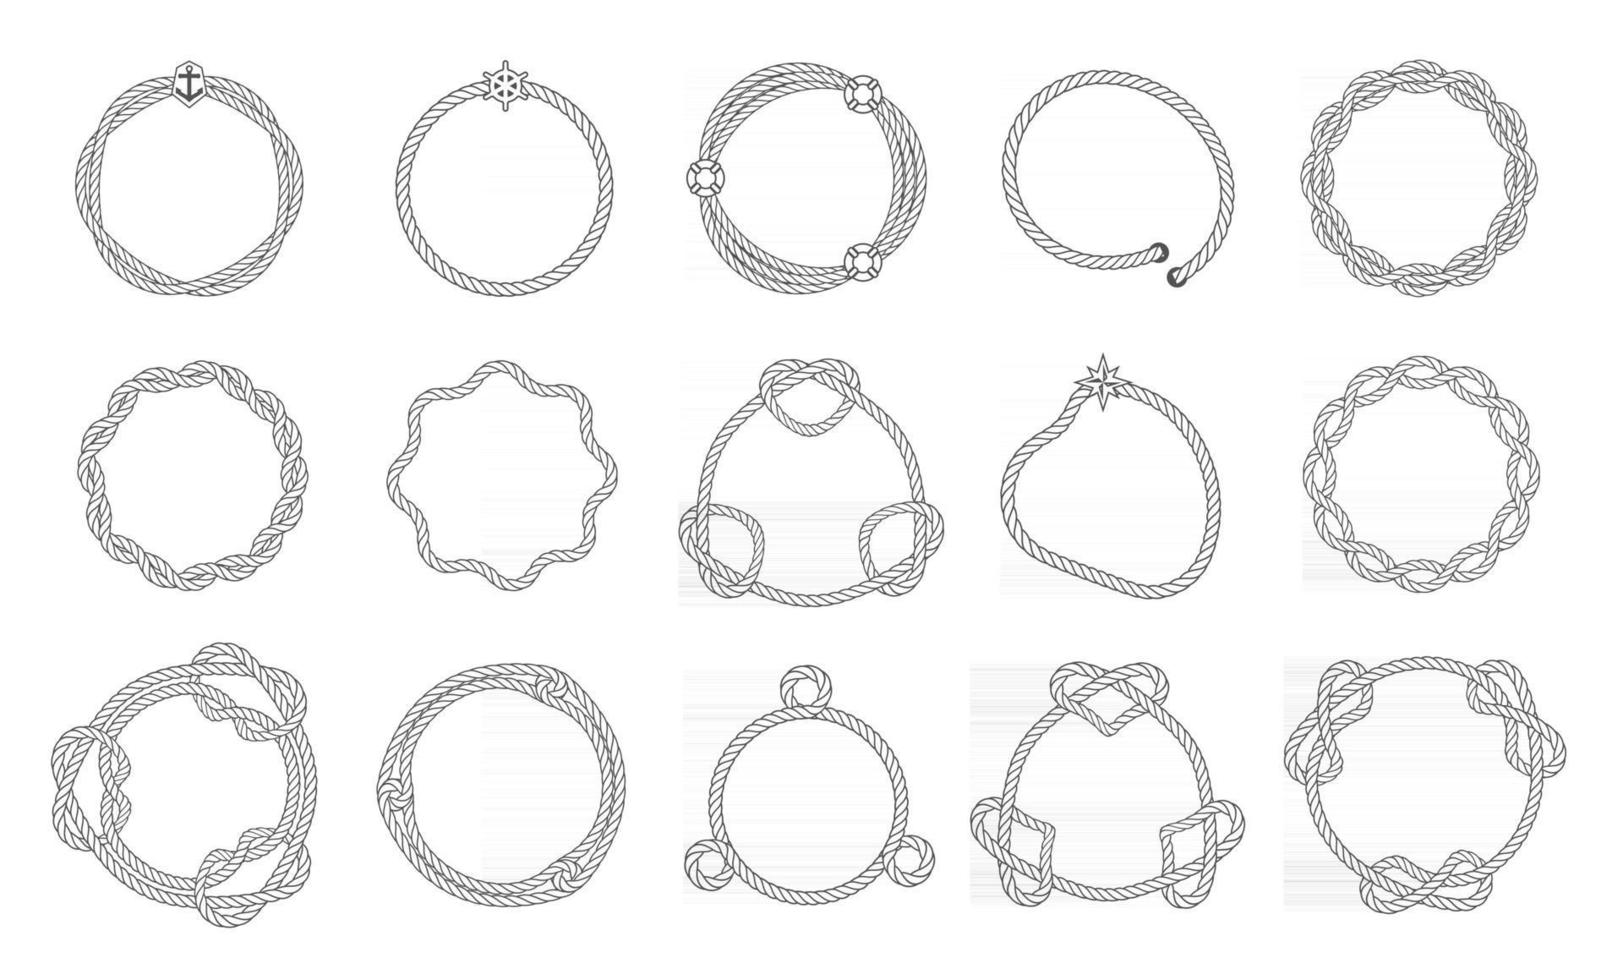 Round rope frames, wavy and smooth outline with sea knots. Woven lines of frames. Borders for selection template, vector illustration.